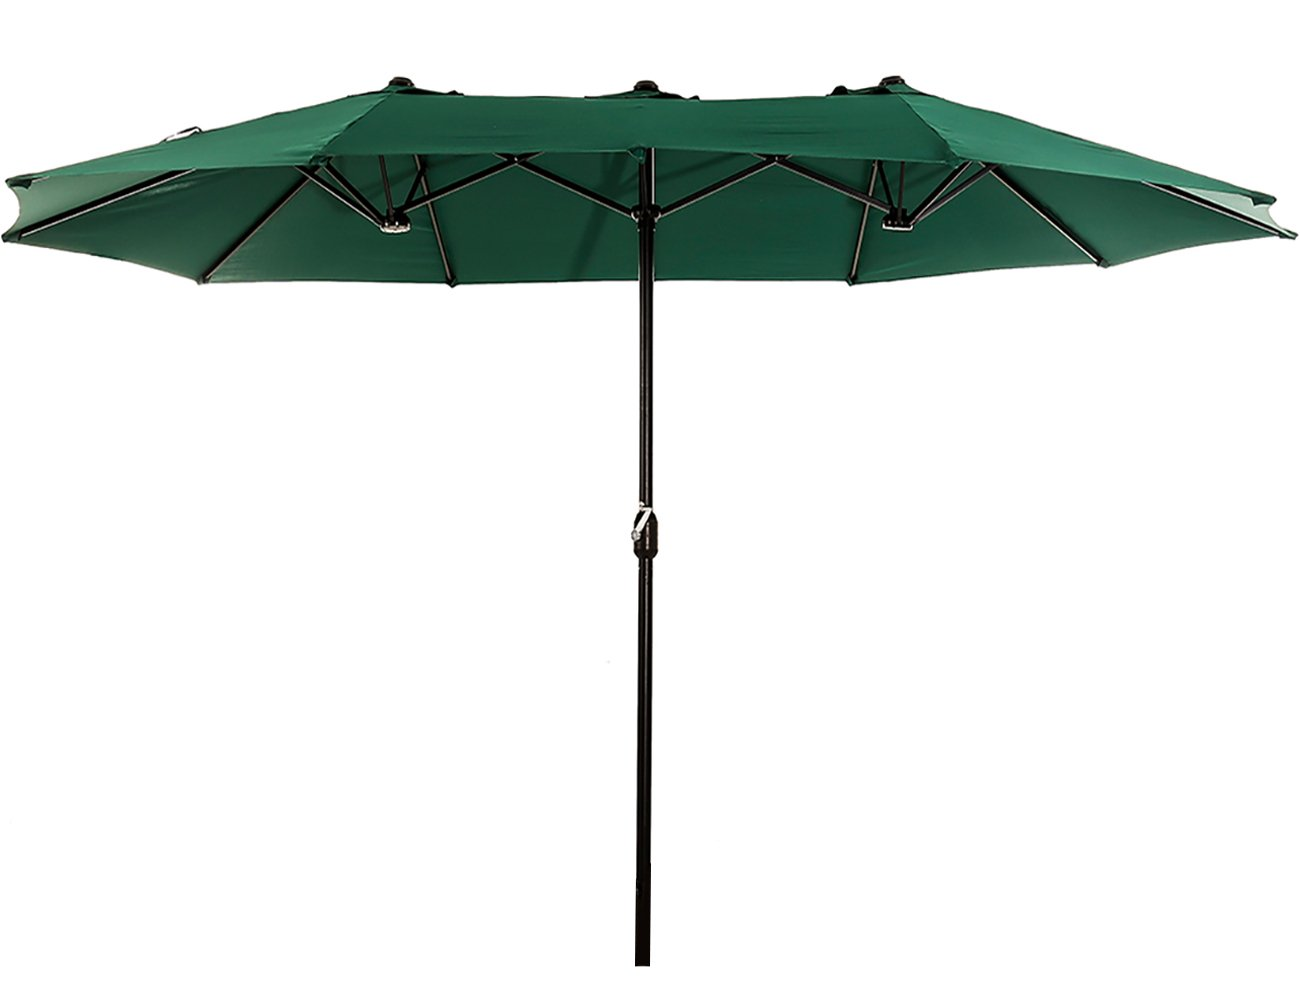 Superjare Outdoor Patio Umbrella with Crank System, Extra-large Double-sided Design, 100% Polyester Fabric - Green